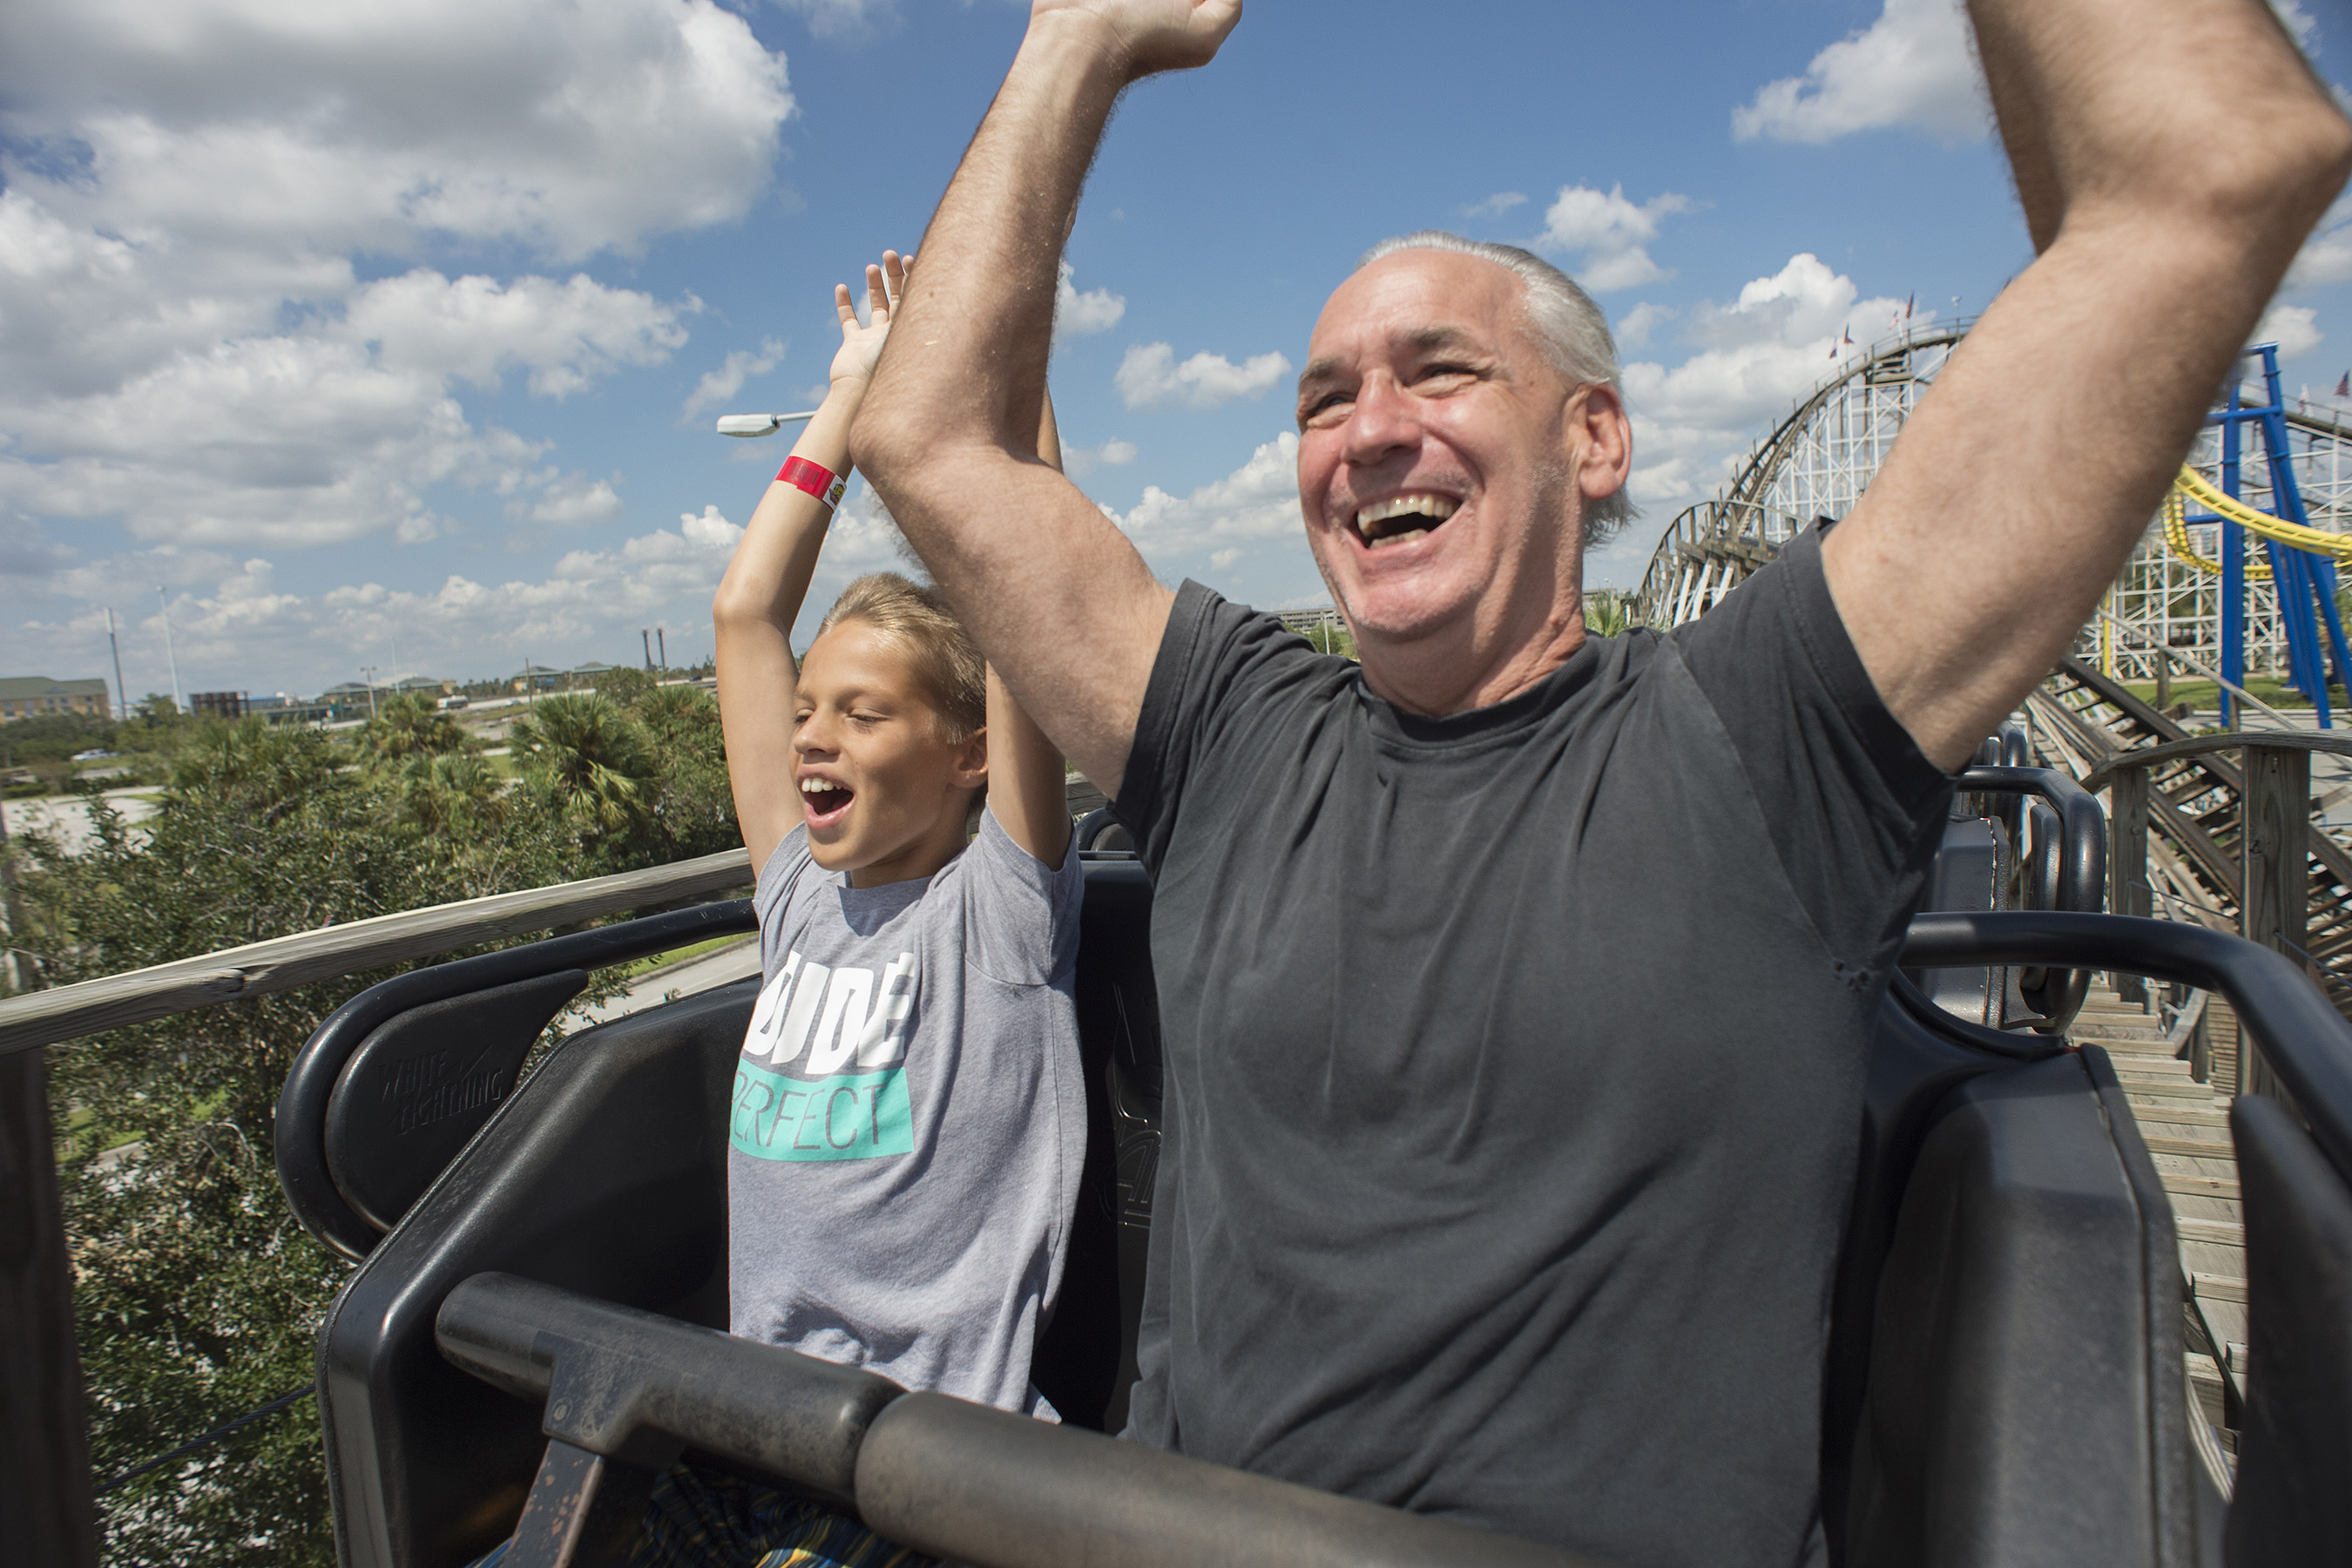 Visitors Luke Spinelli and Bret Boeddinhaus enjoy a ride on White Lightning at Fun Spot Orlando.